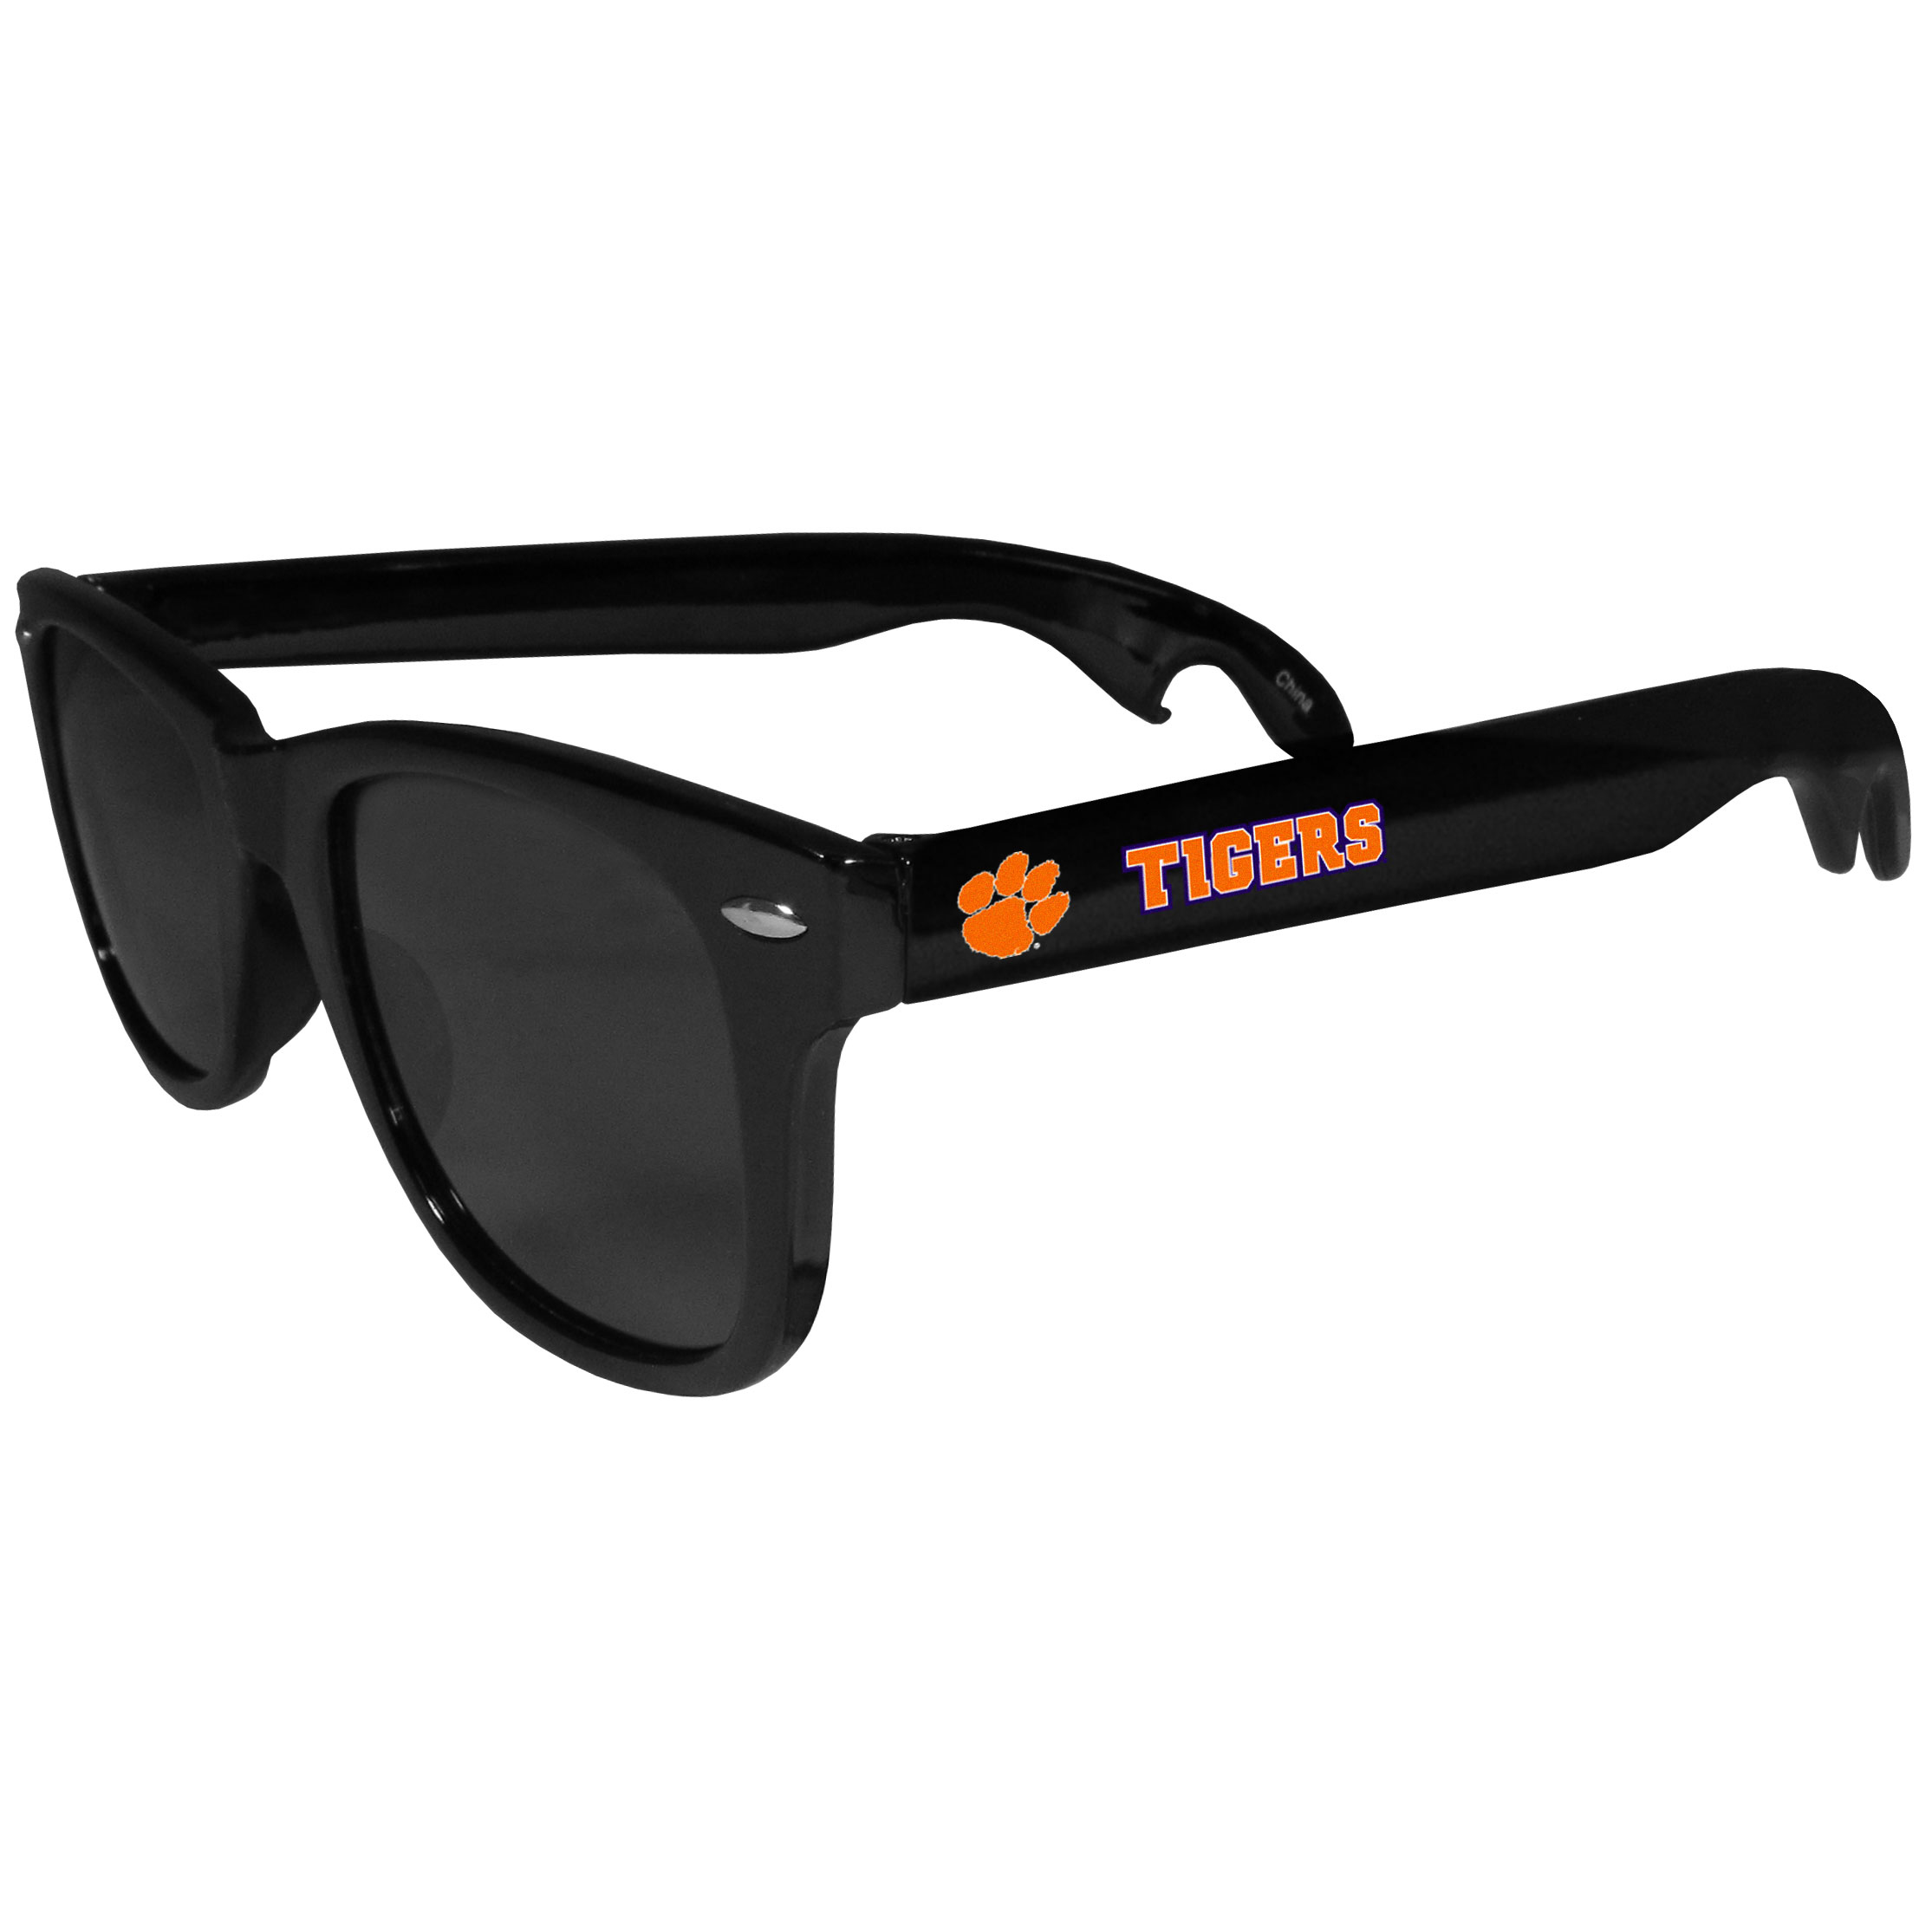 Clemson Tigers Beachfarer Bottle Opener Sunglasses - Seriously, these sunglasses open bottles! Keep the party going with these amazing Clemson Tigers bottle opener sunglasses. The stylish retro frames feature team designs on the arms and functional bottle openers on the end of the arms. Whether you are at the beach or having a backyard BBQ on game day, these shades will keep your eyes protected with 100% UVA/UVB protection and keep you hydrated with the handy bottle opener arms.